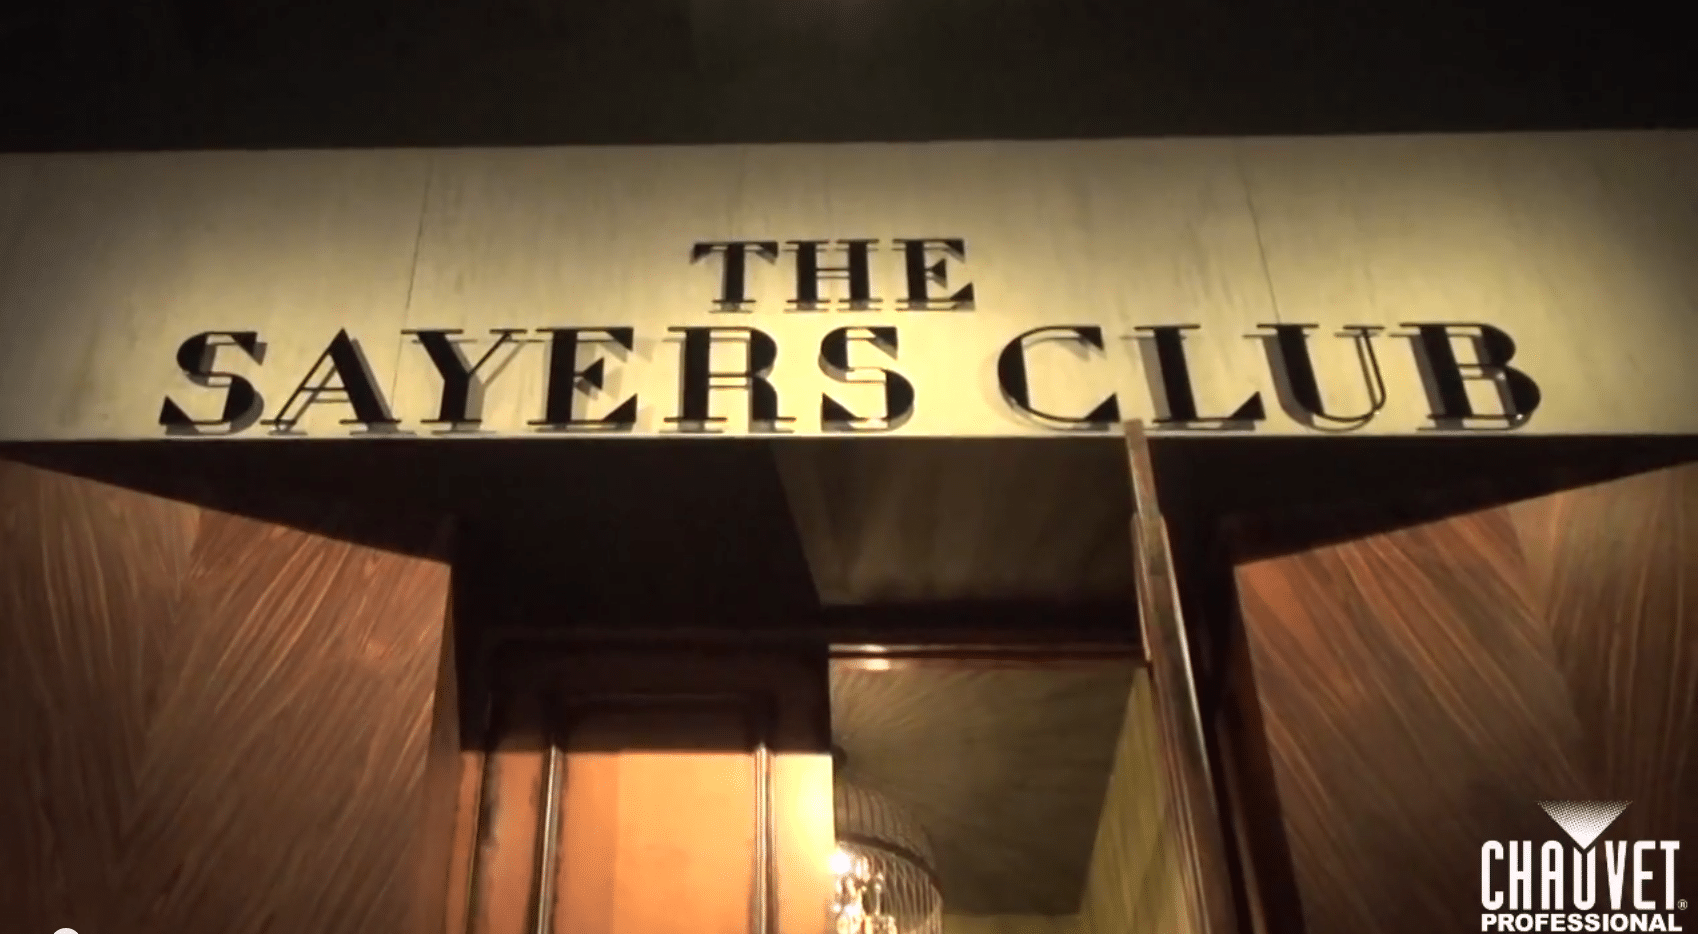 Interview with Jason Scoppa and Micah Otano of The Sayers Club